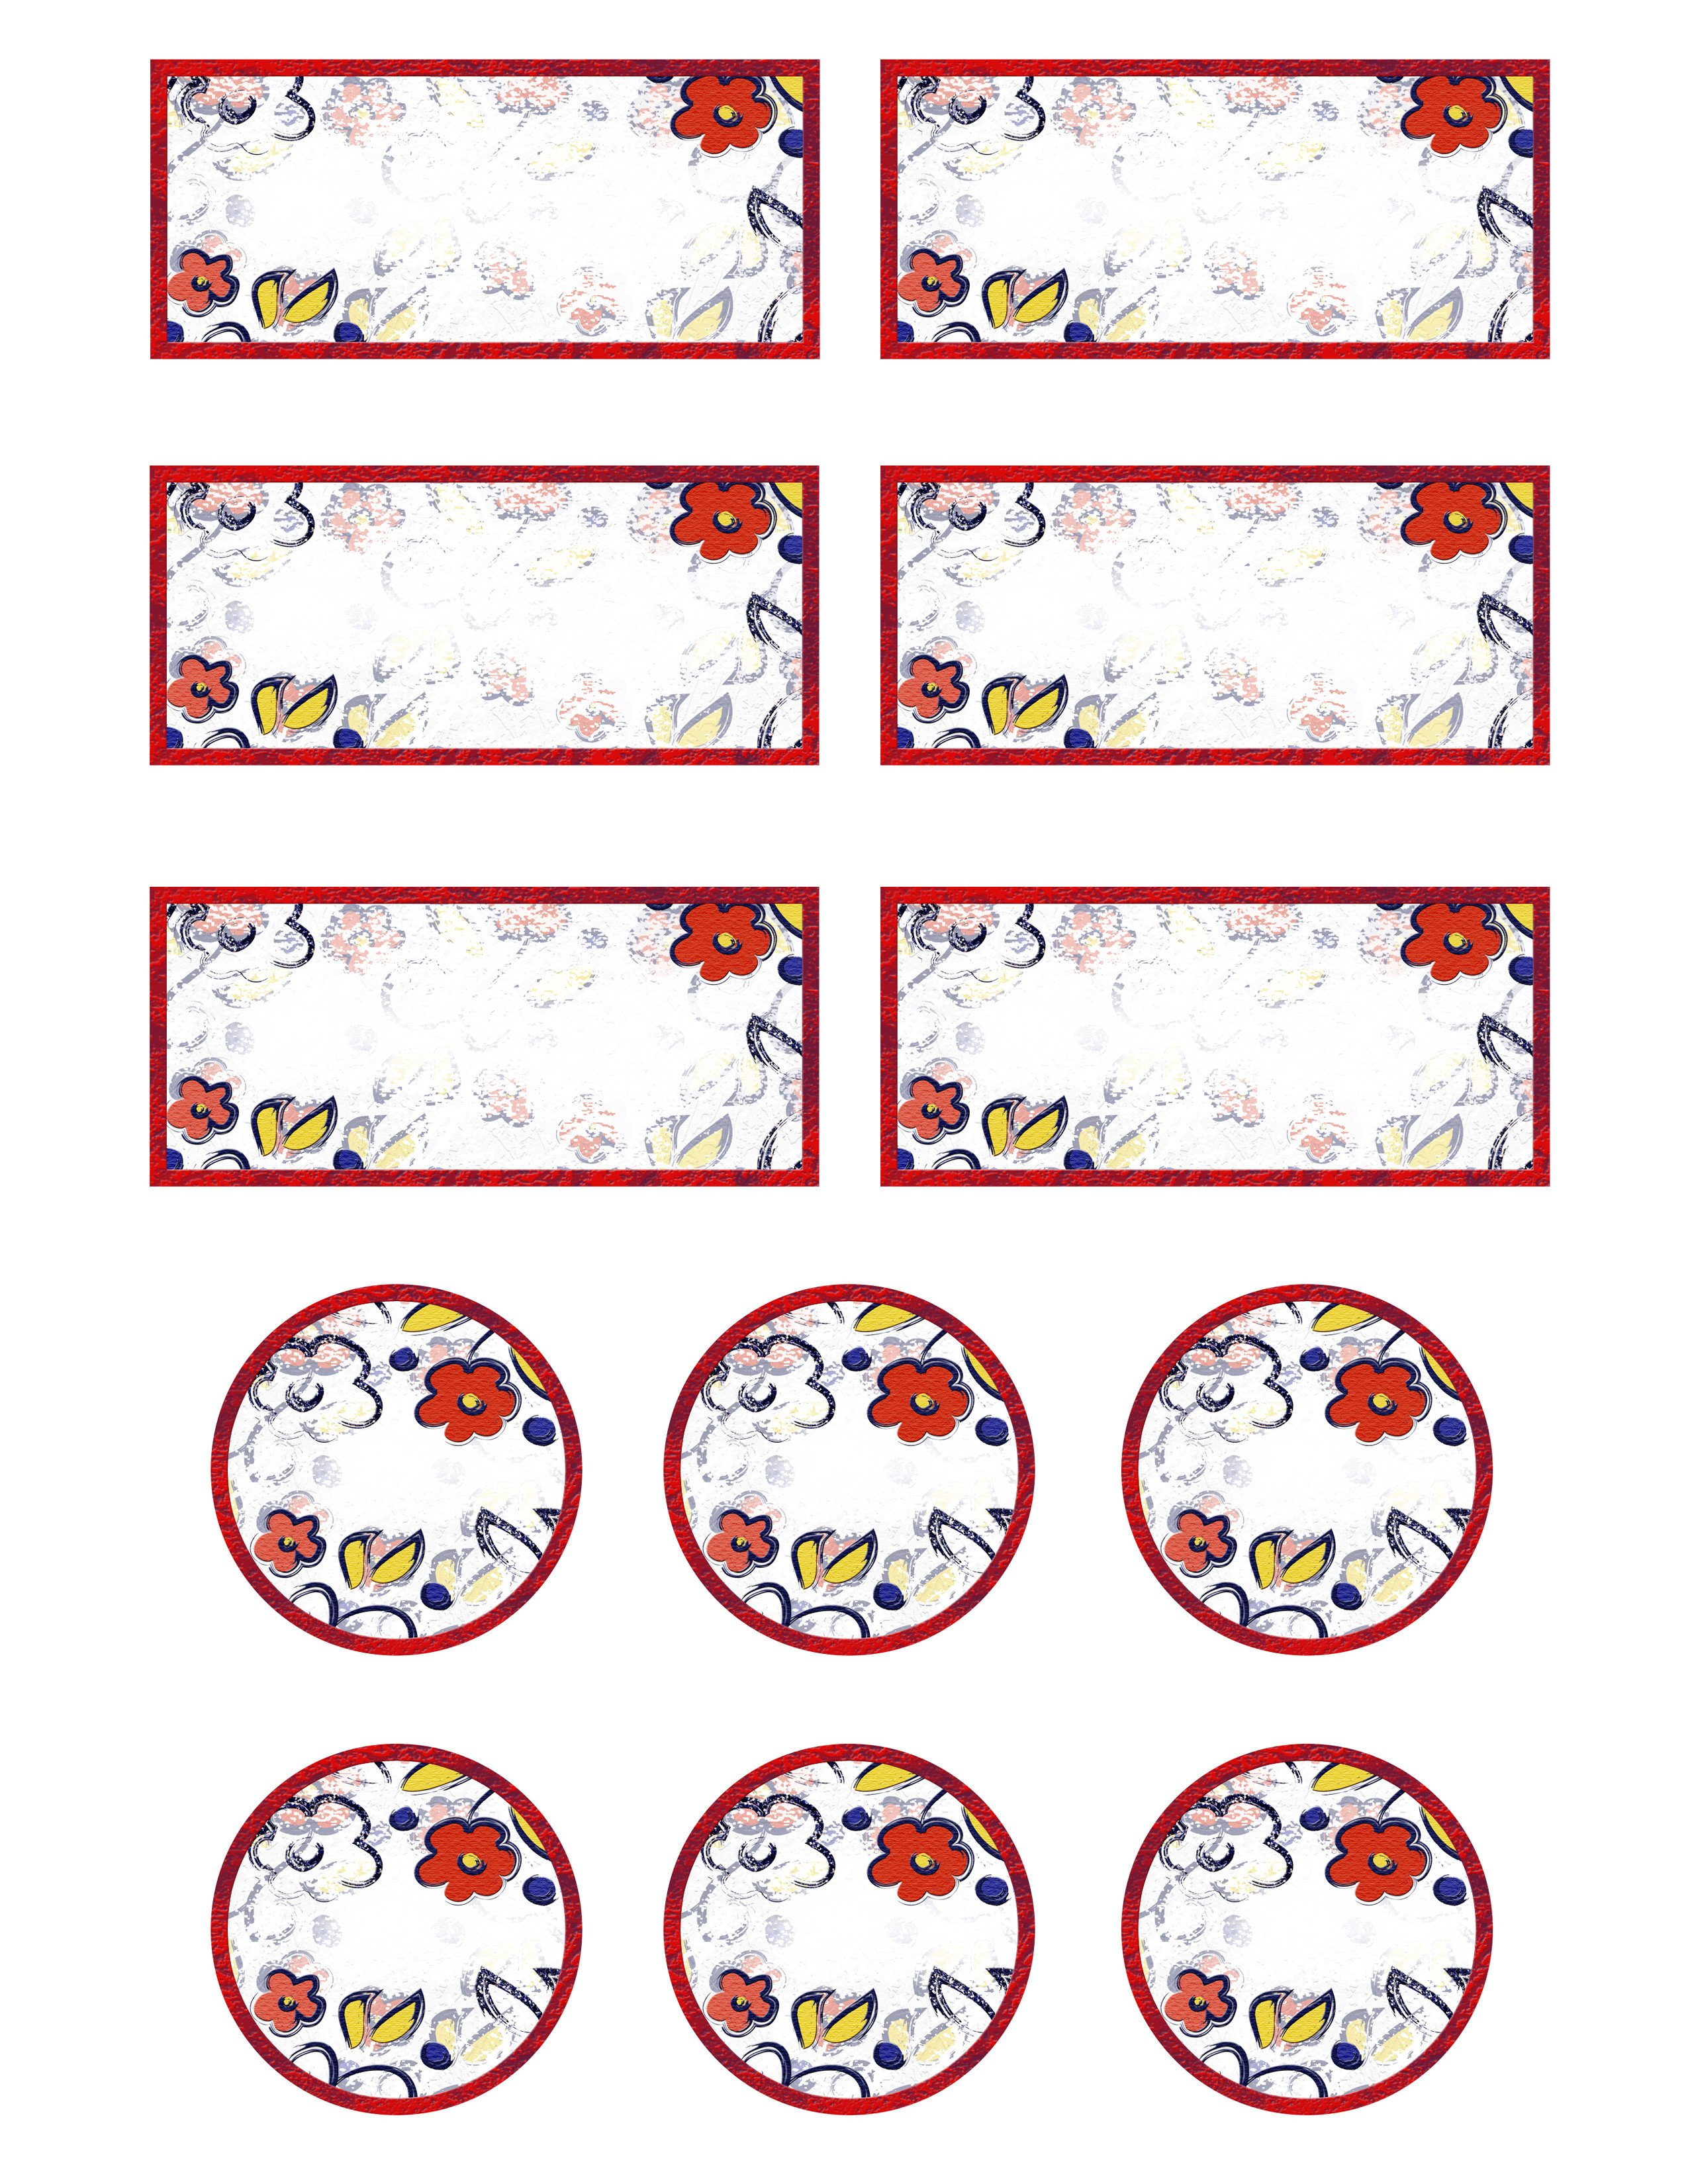 Free Printable Labels Template Free Printable Jar Labels for Home Canning